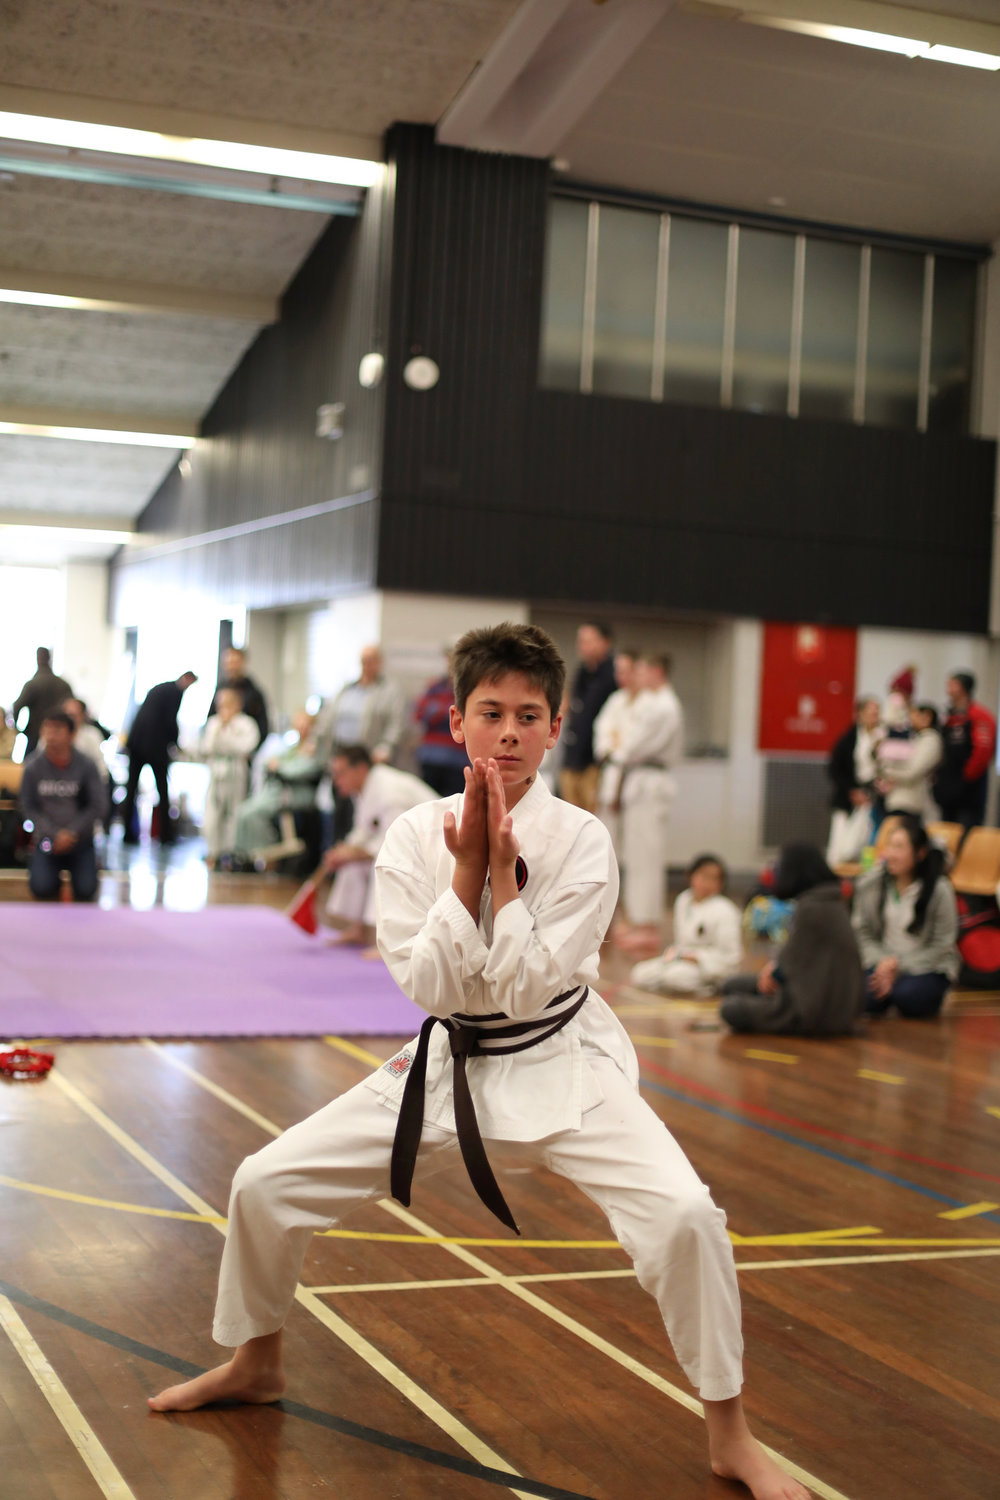 Seiyunchin Kata being performed at the AOGKF annual friendship tournament 2018